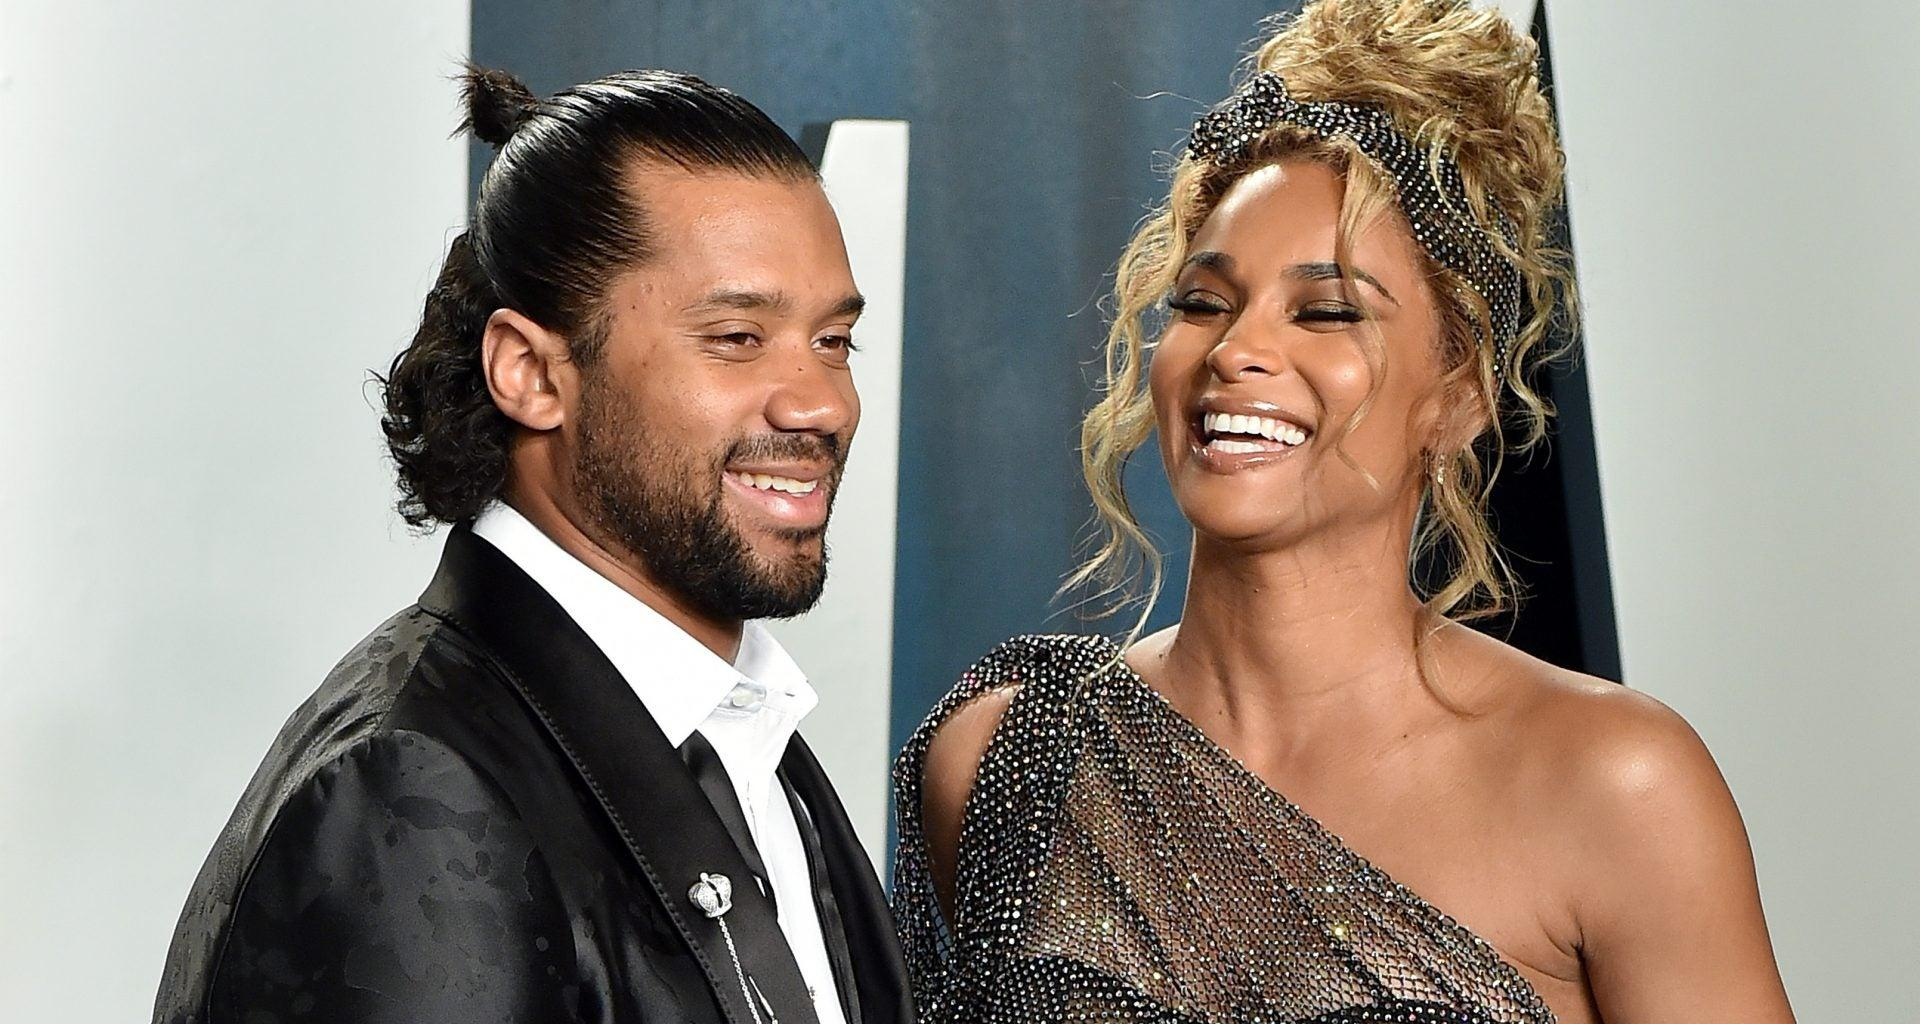 Ciara And Russell Wilson Introduce Their New Baby To The World - Check Out The First Pic!